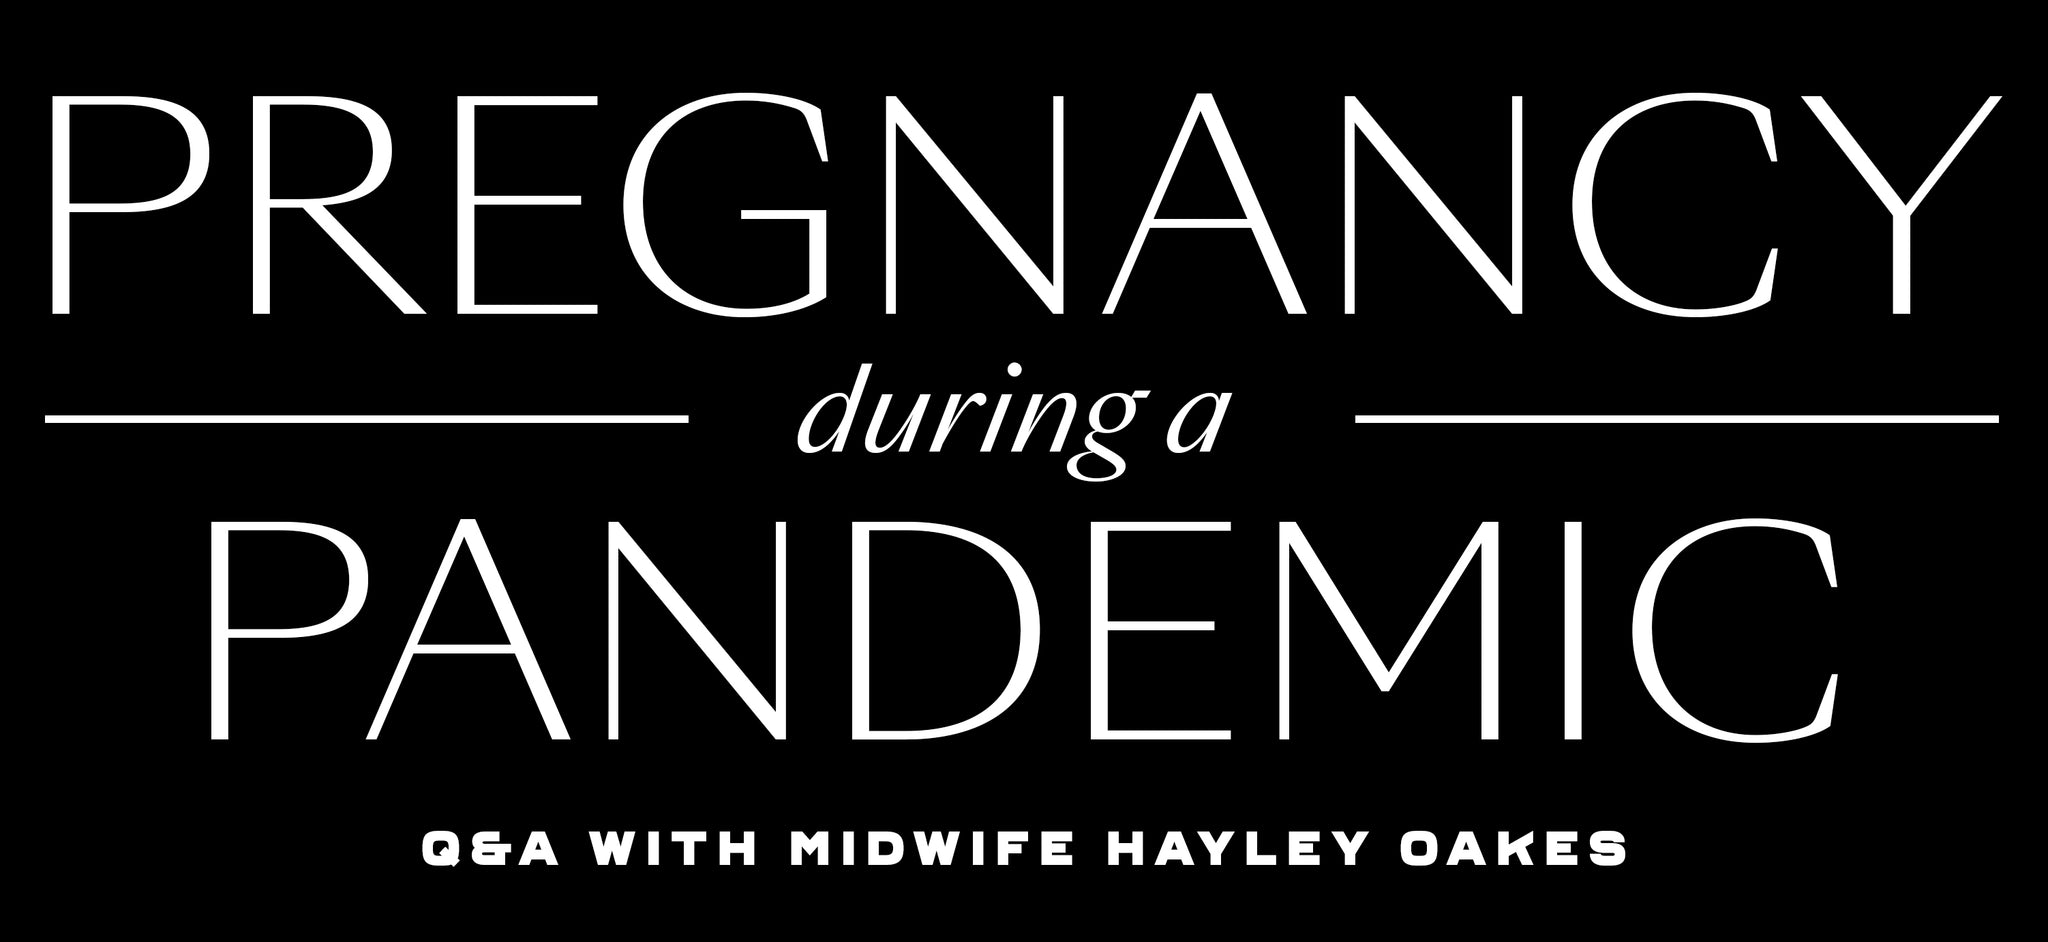 Pregnancy During A Pandemic: Q&A with Midwife Hayley Oakes